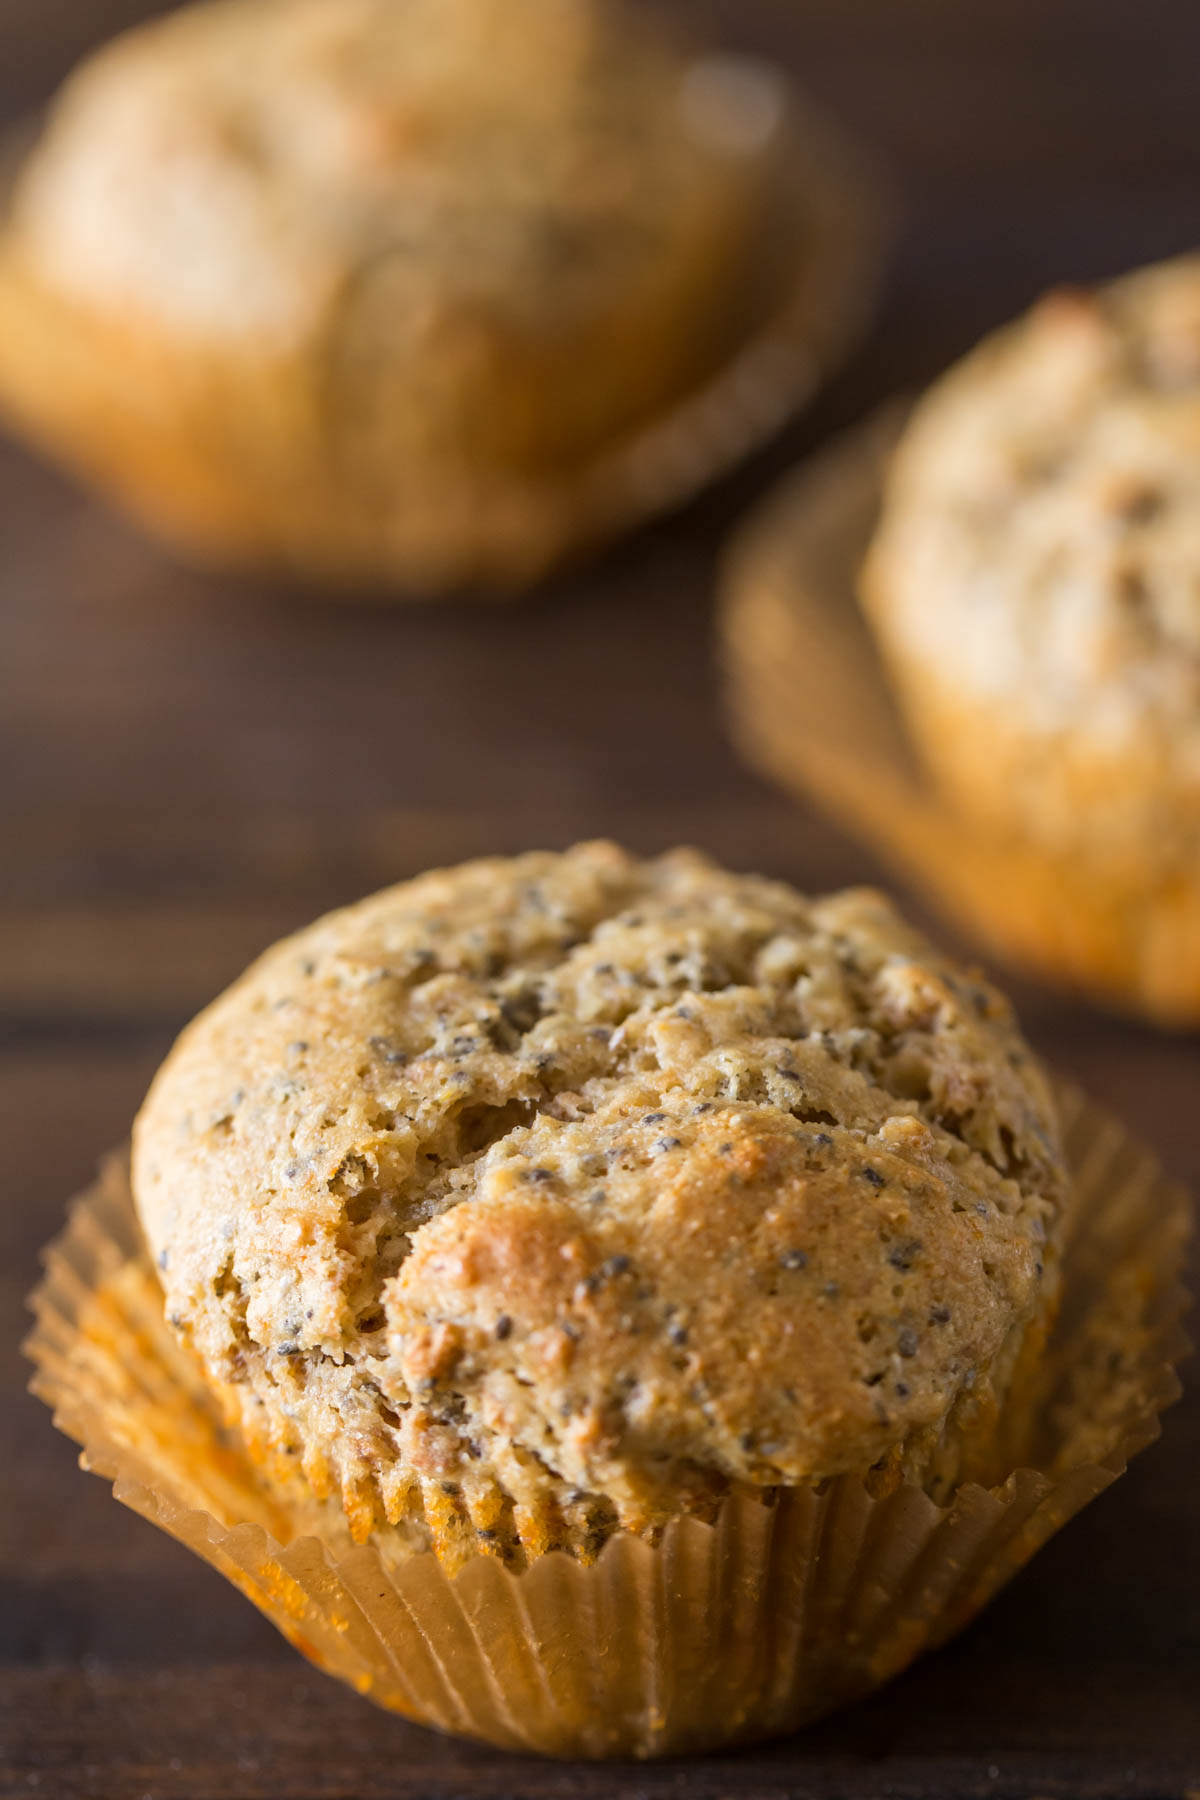 A Honey Bran Muffin with two muffins in the background.